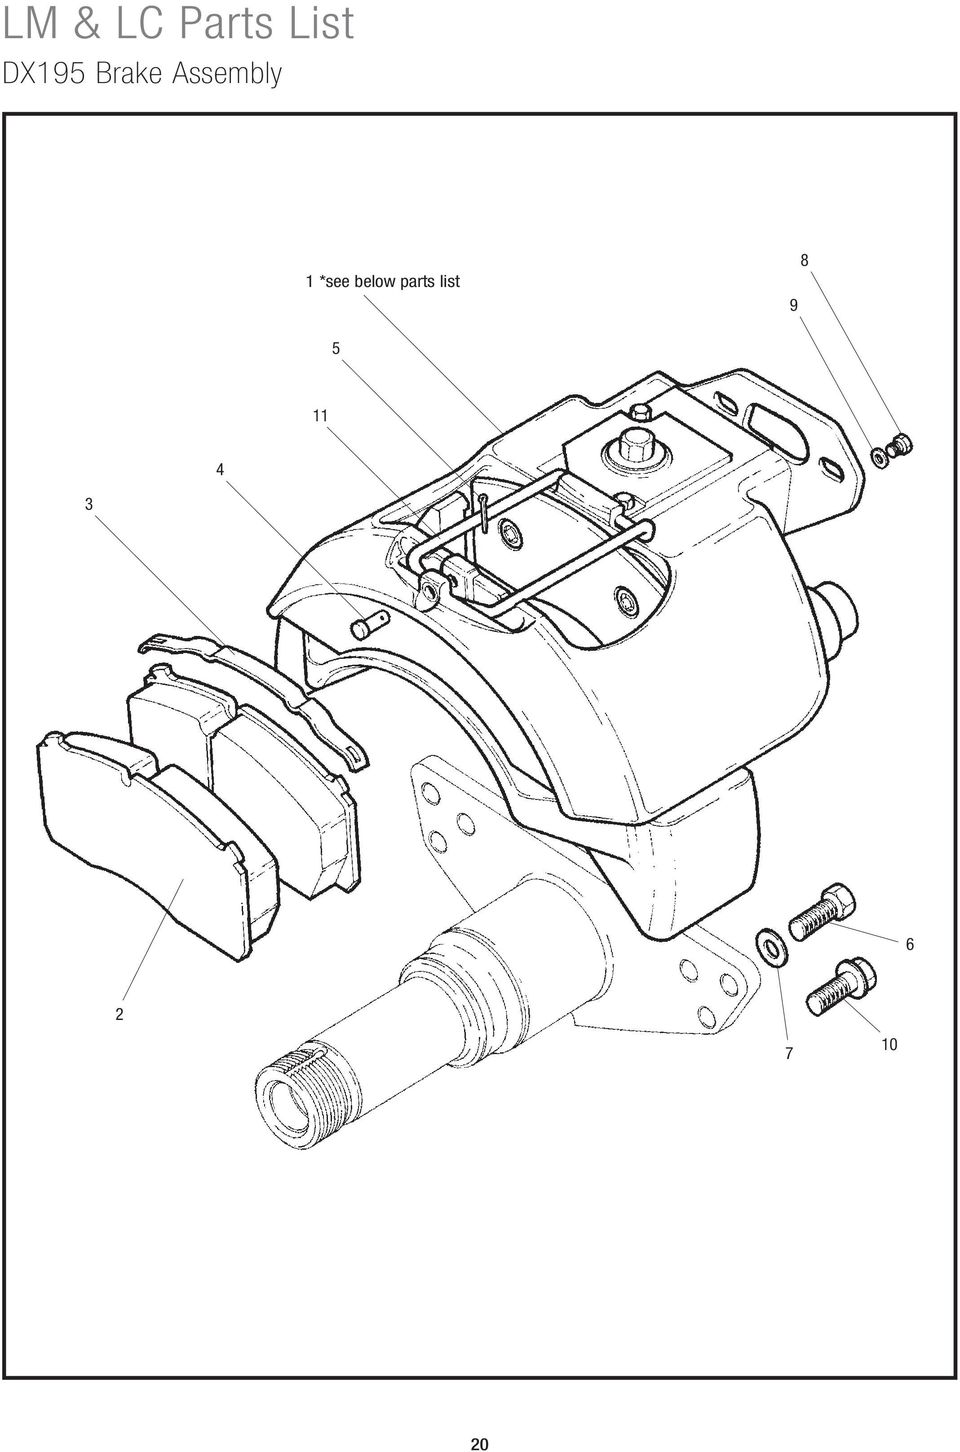 meritor trailer products pdf Dodge Durango Brake System 1 see below parts